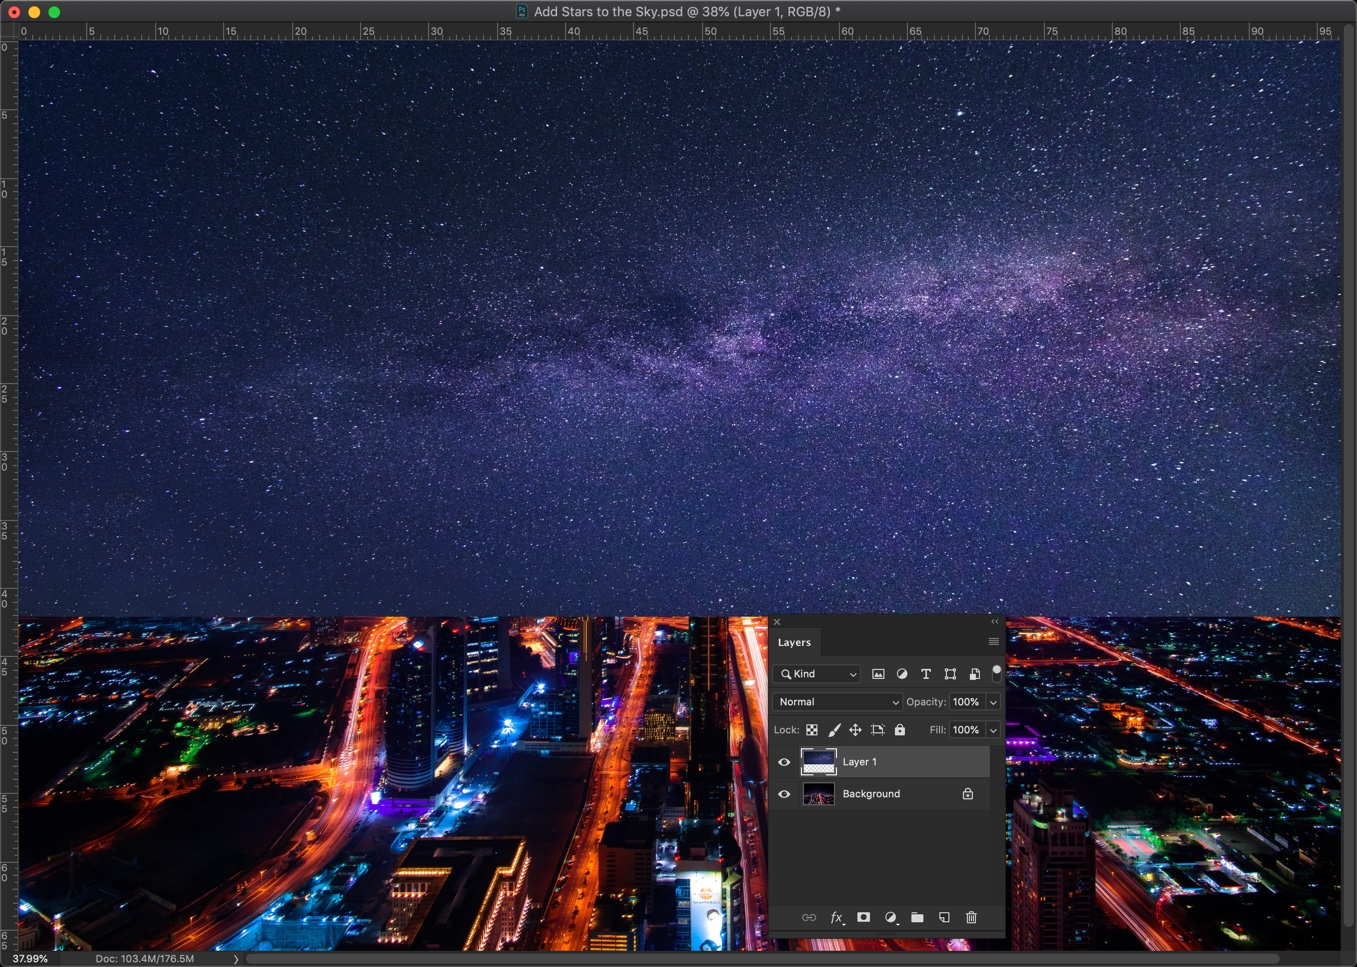 4-1 - How to add stars to the sky in Photoshop